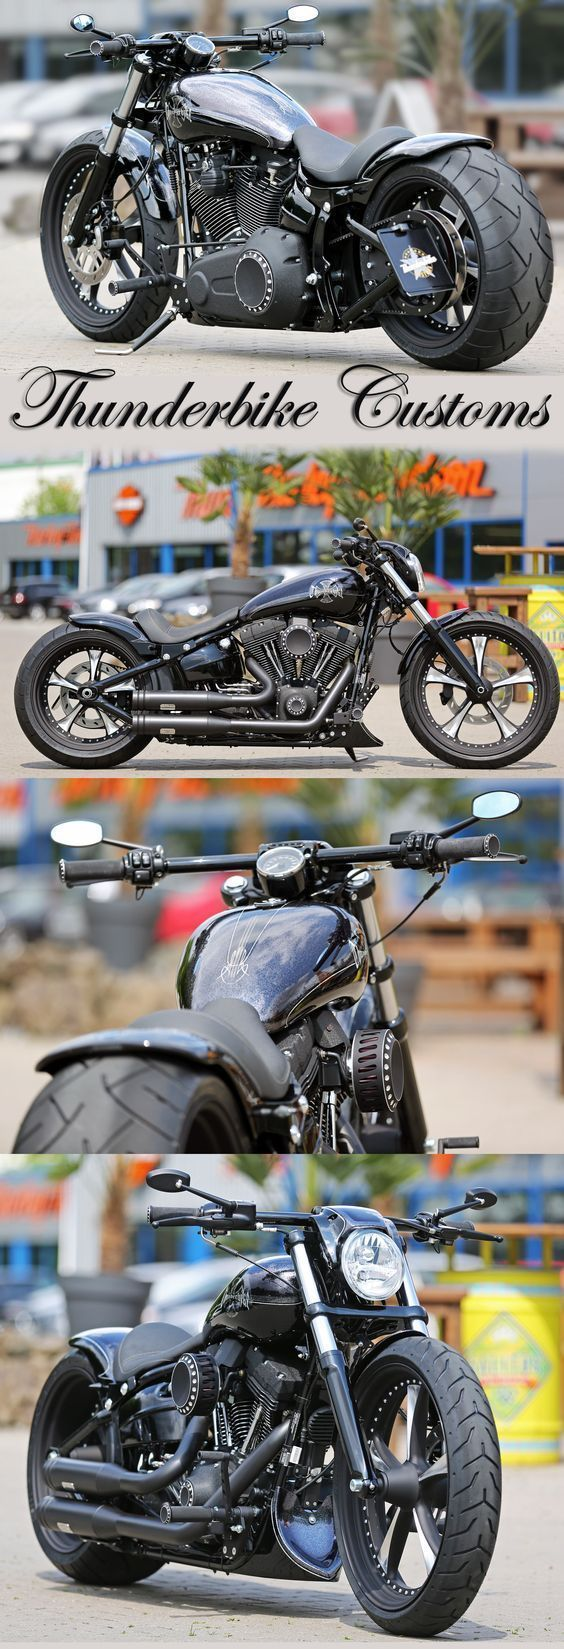 @PunIntendedMag Customized Harley-Davidson Softail Breakout by Thunderbike. http://punintendednews.club For this project we added a long list of our custom parts like the Lowrider wheels, rear-fender Kit, Air-Ride suspension, custom tank, forward controls and much more.: #harleydavidsoncustomsoftail